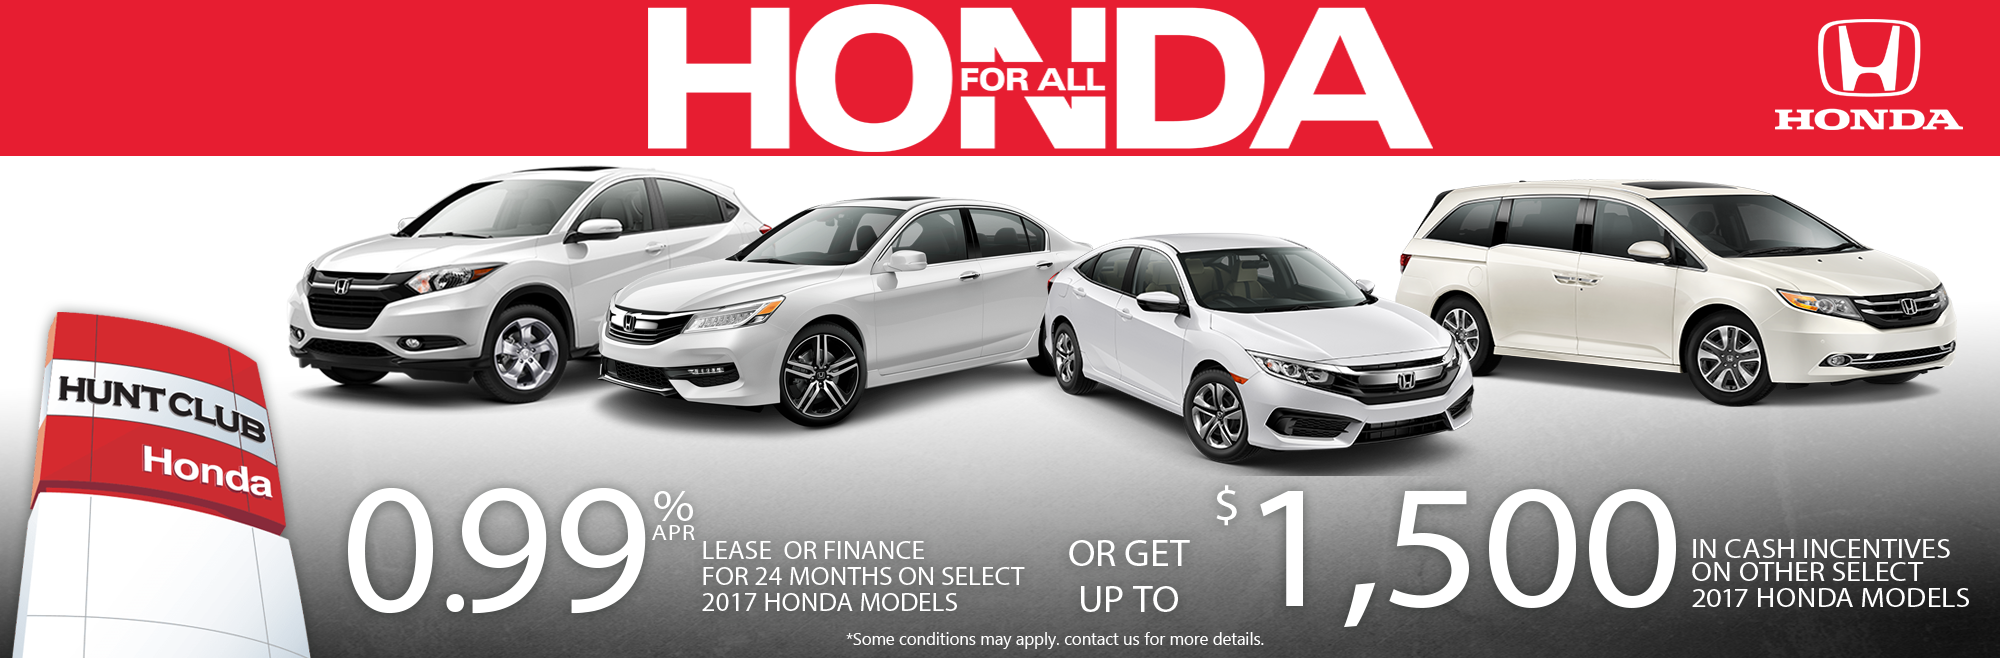 Finance Or Lease From 099 APR Up To 24 Months On Other Select 2017 Honda Models OR Get 1500 In Cash Incentives